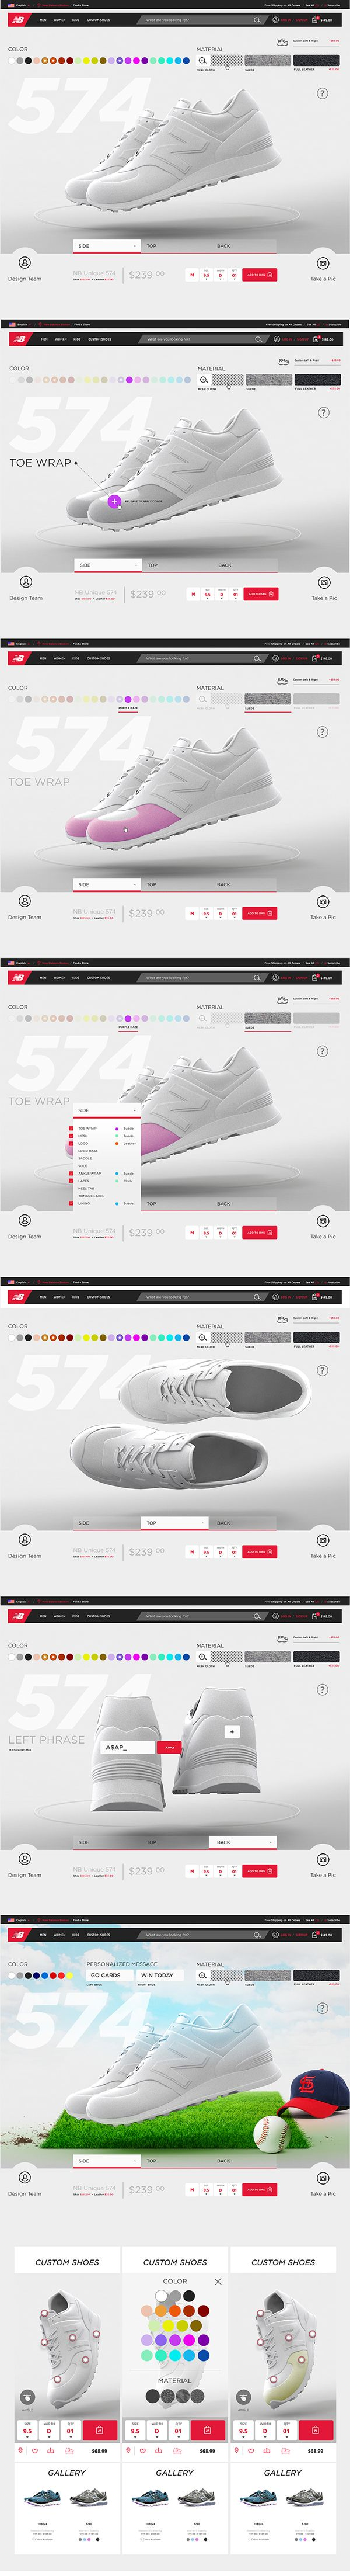 New Balance by Phil Rampulla